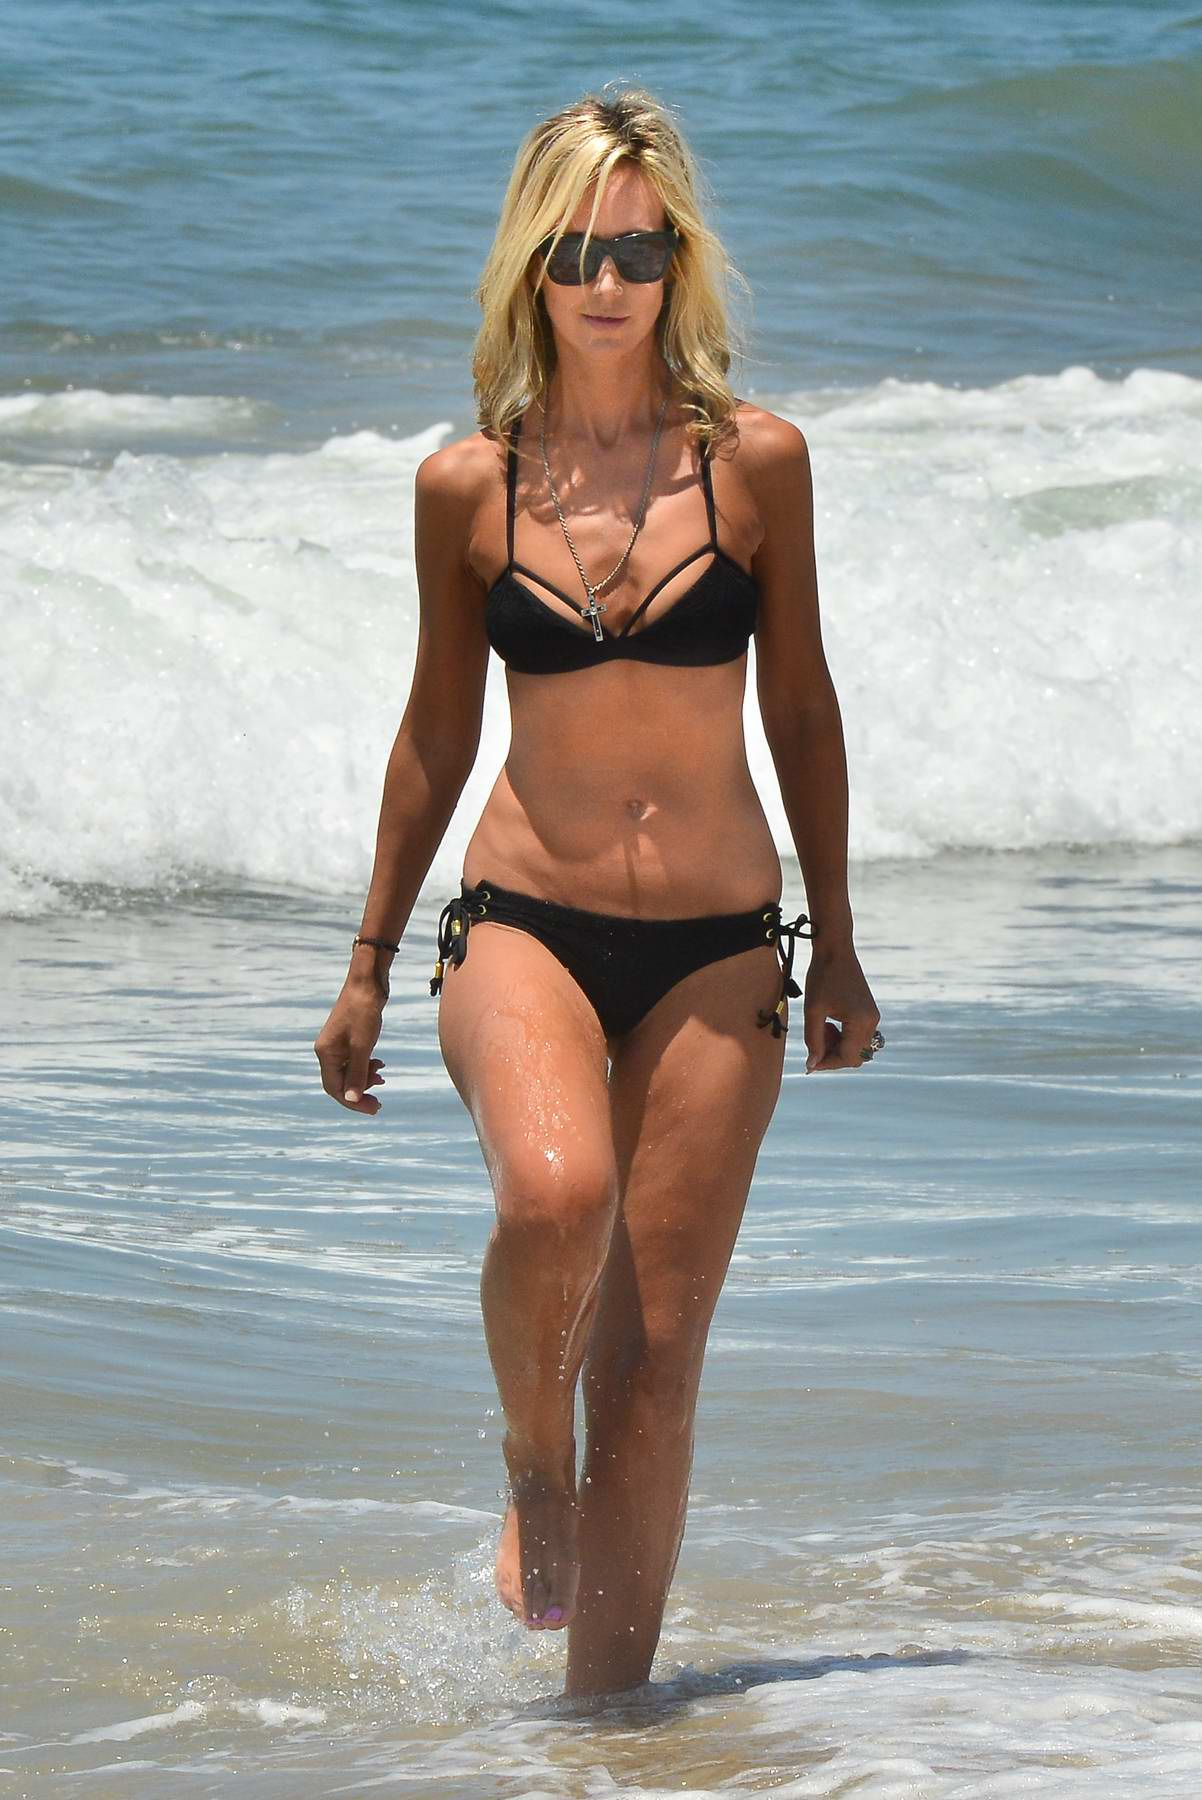 Victoria Hervey nude (21 fotos), young Boobs, Snapchat, cameltoe 2020